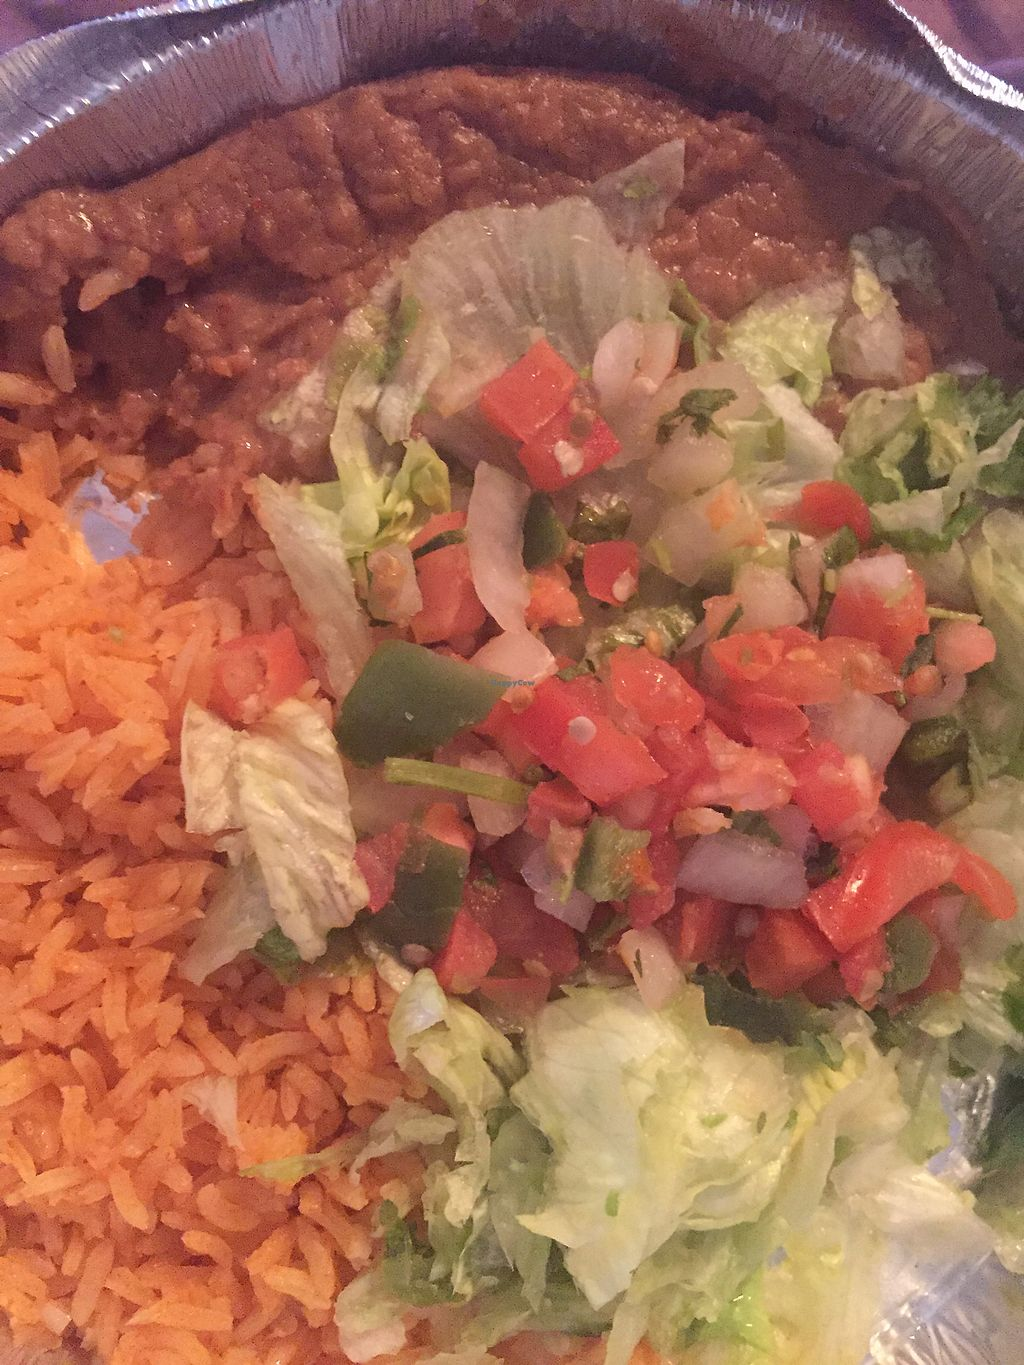 """Photo of Chimi's Mexican Food  by <a href=""""/members/profile/MrvaRbinson"""">MrvaRbinson</a> <br/>Vegan fajita done right! <br/> January 15, 2018  - <a href='/contact/abuse/image/109591/347000'>Report</a>"""